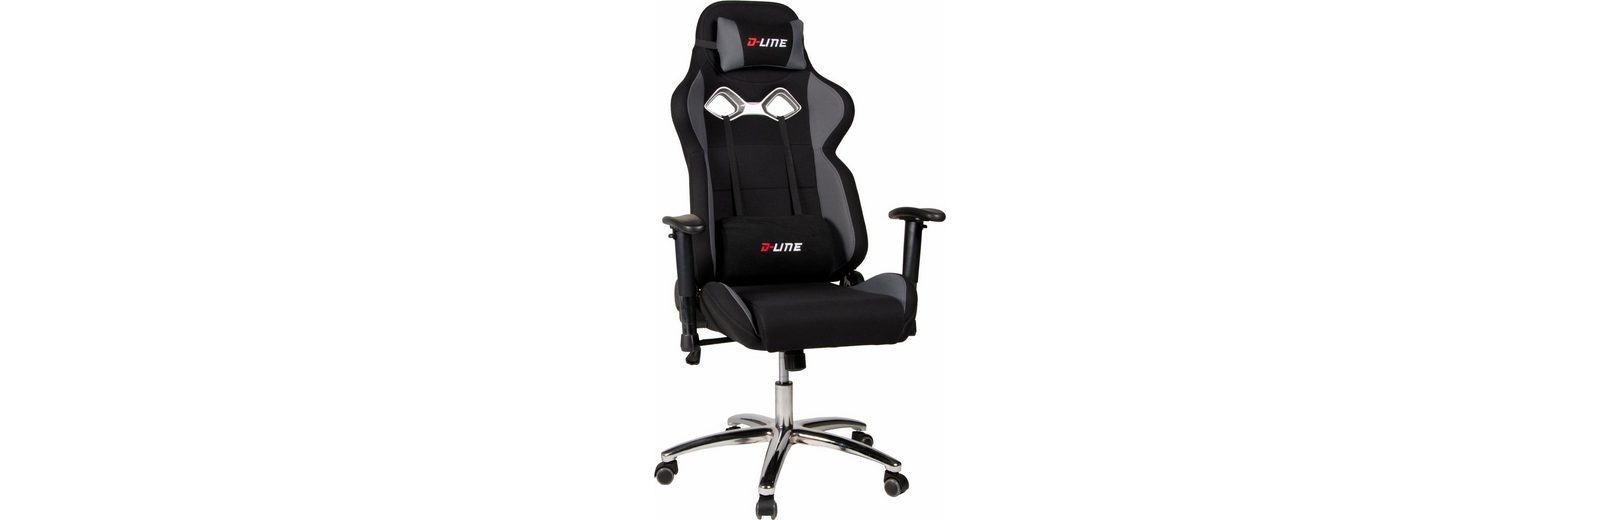 Duo Collection Gaming Chair »D-Line 400«, inklusive 2 Kissen